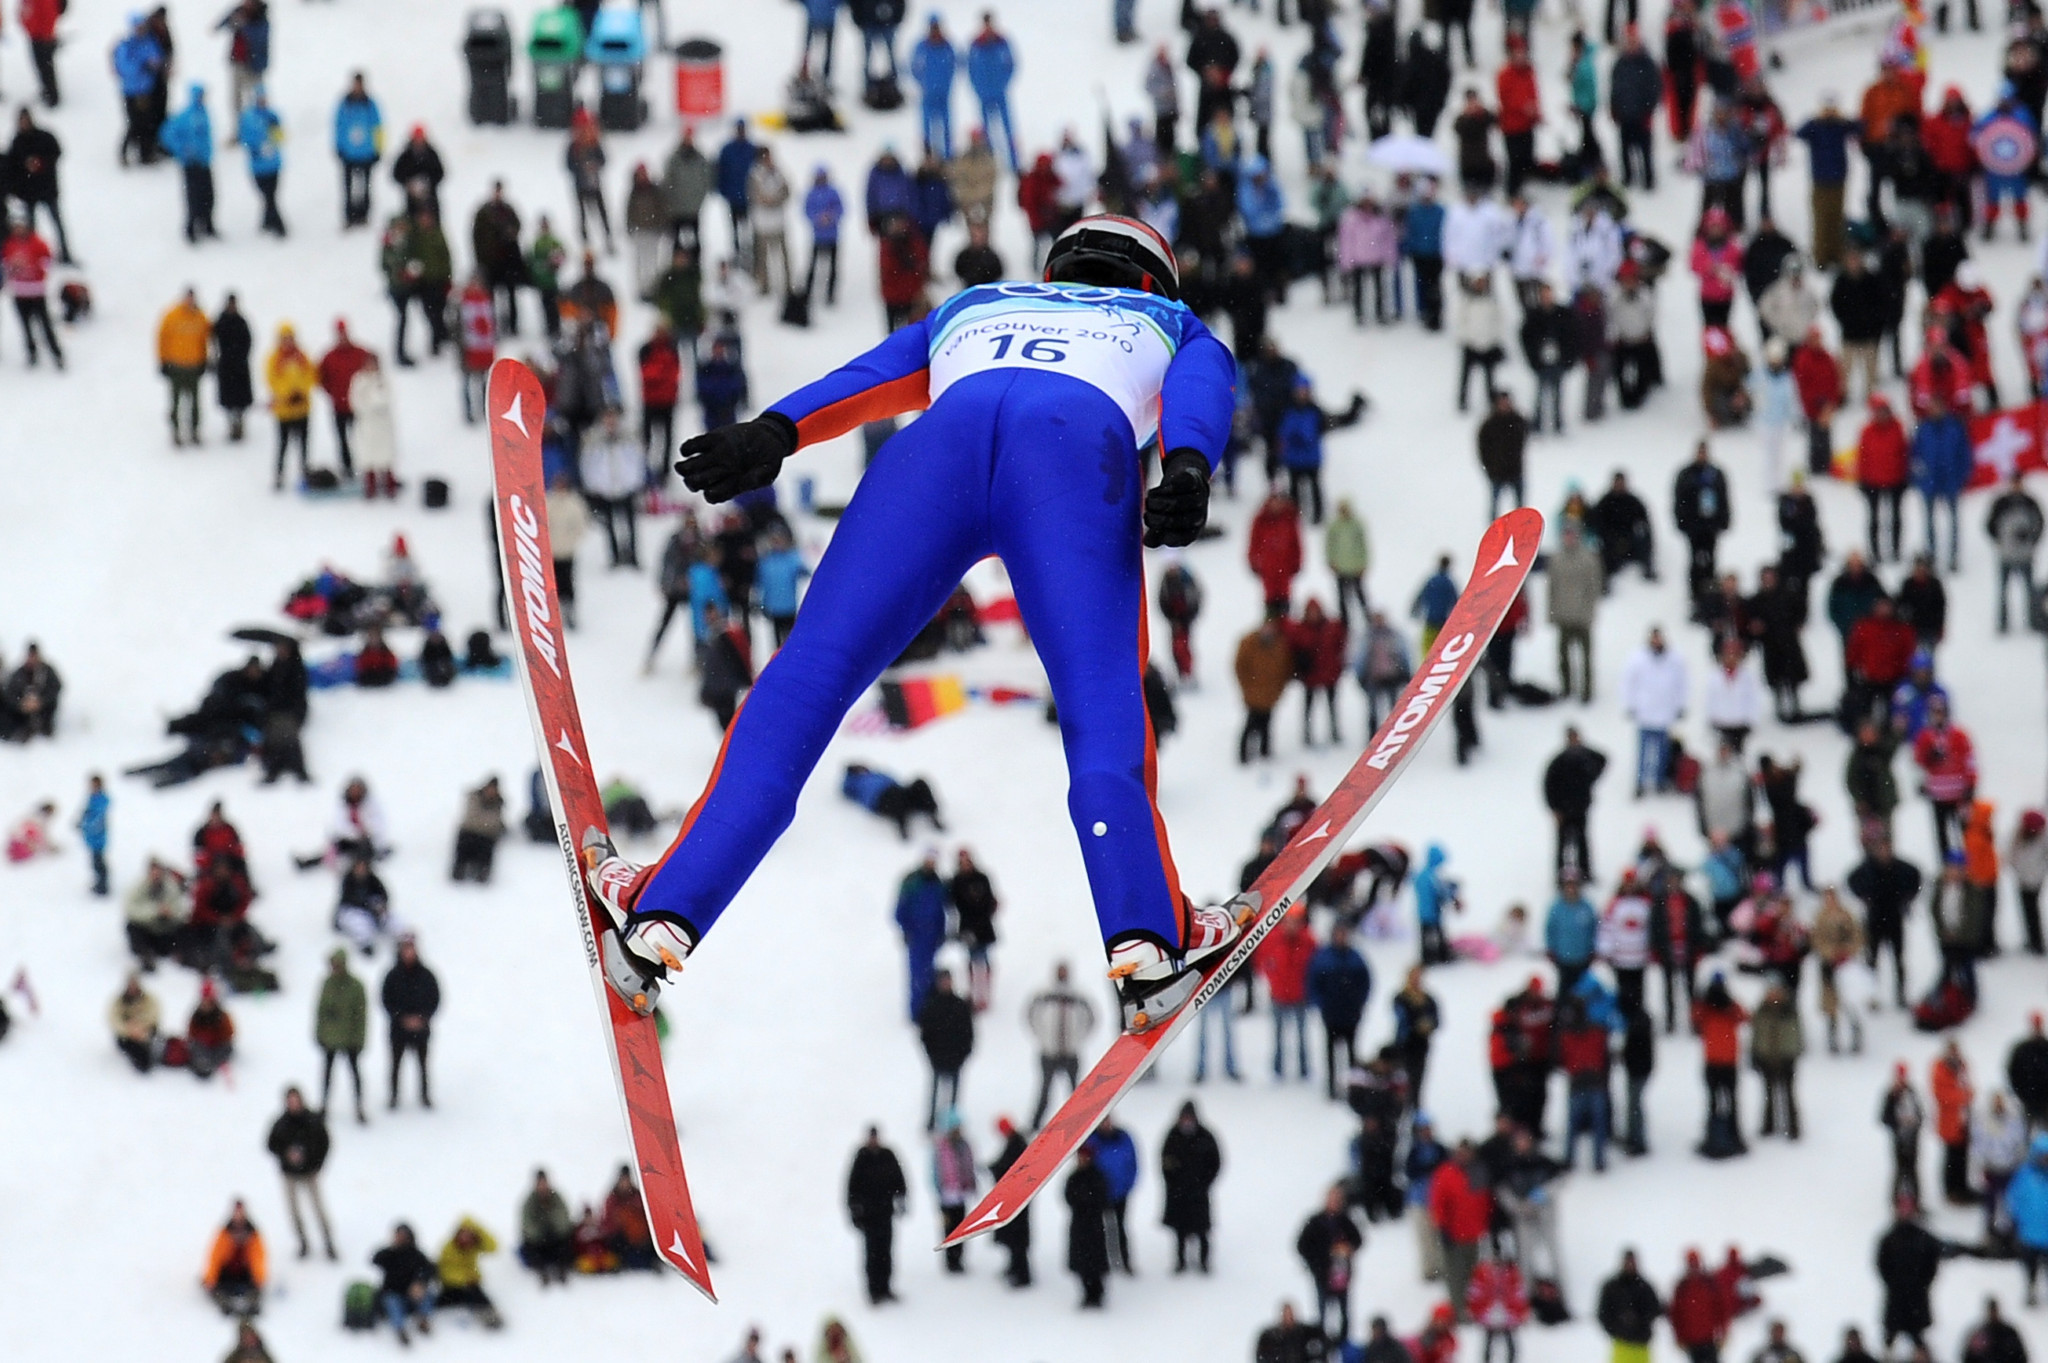 Calgary 2026 proposes re-using the Vancouver 2010 ski jumping venue in Whistler for that sport and Nordic combined rather than the one used when they hosted the Winter Olympics in 1988 ©Getty Images